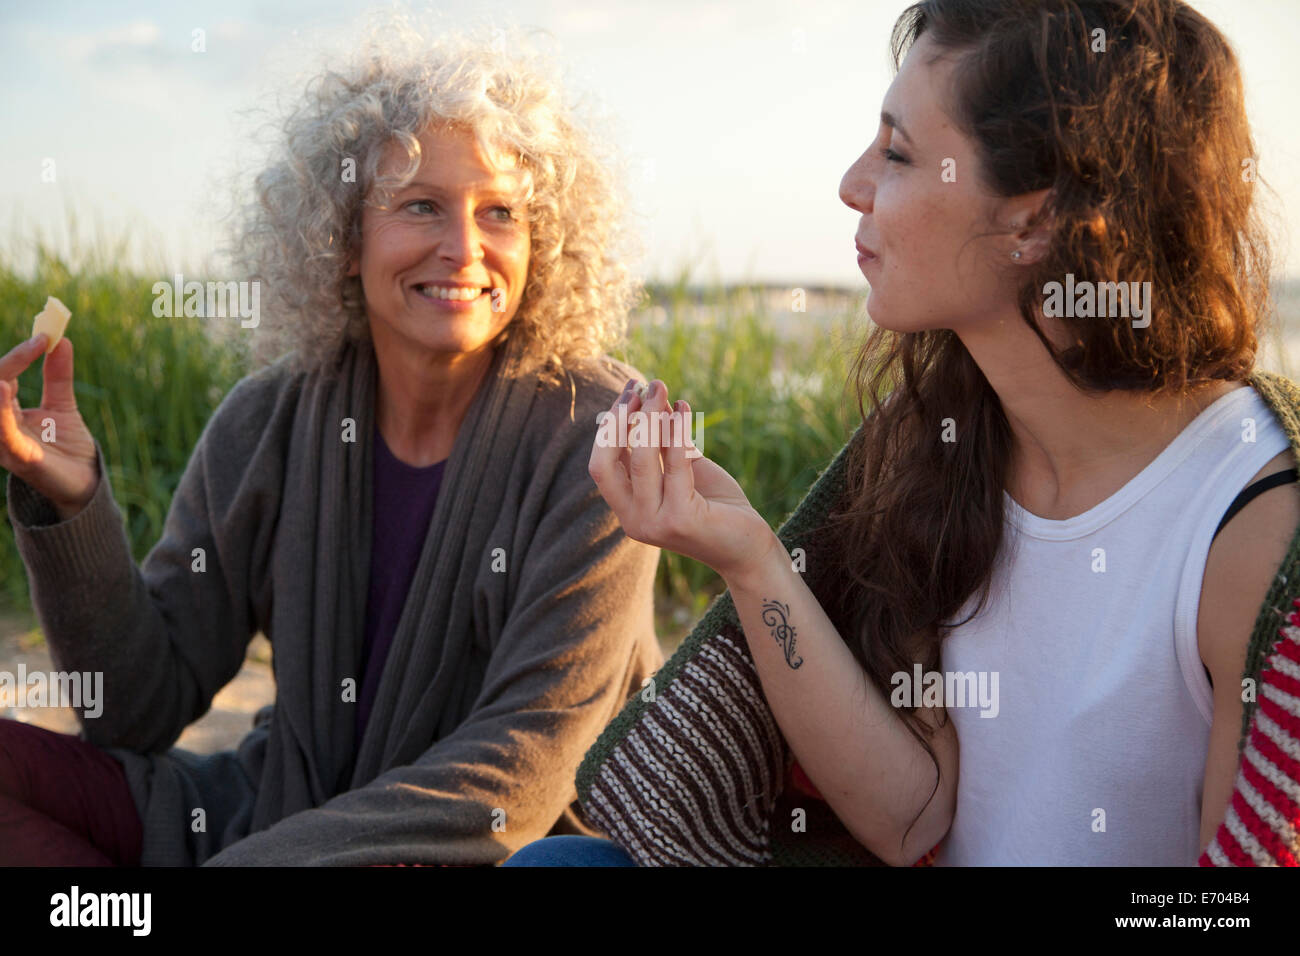 Two women having picnic on Bournemouth beach, Dorset, UK - Stock Image